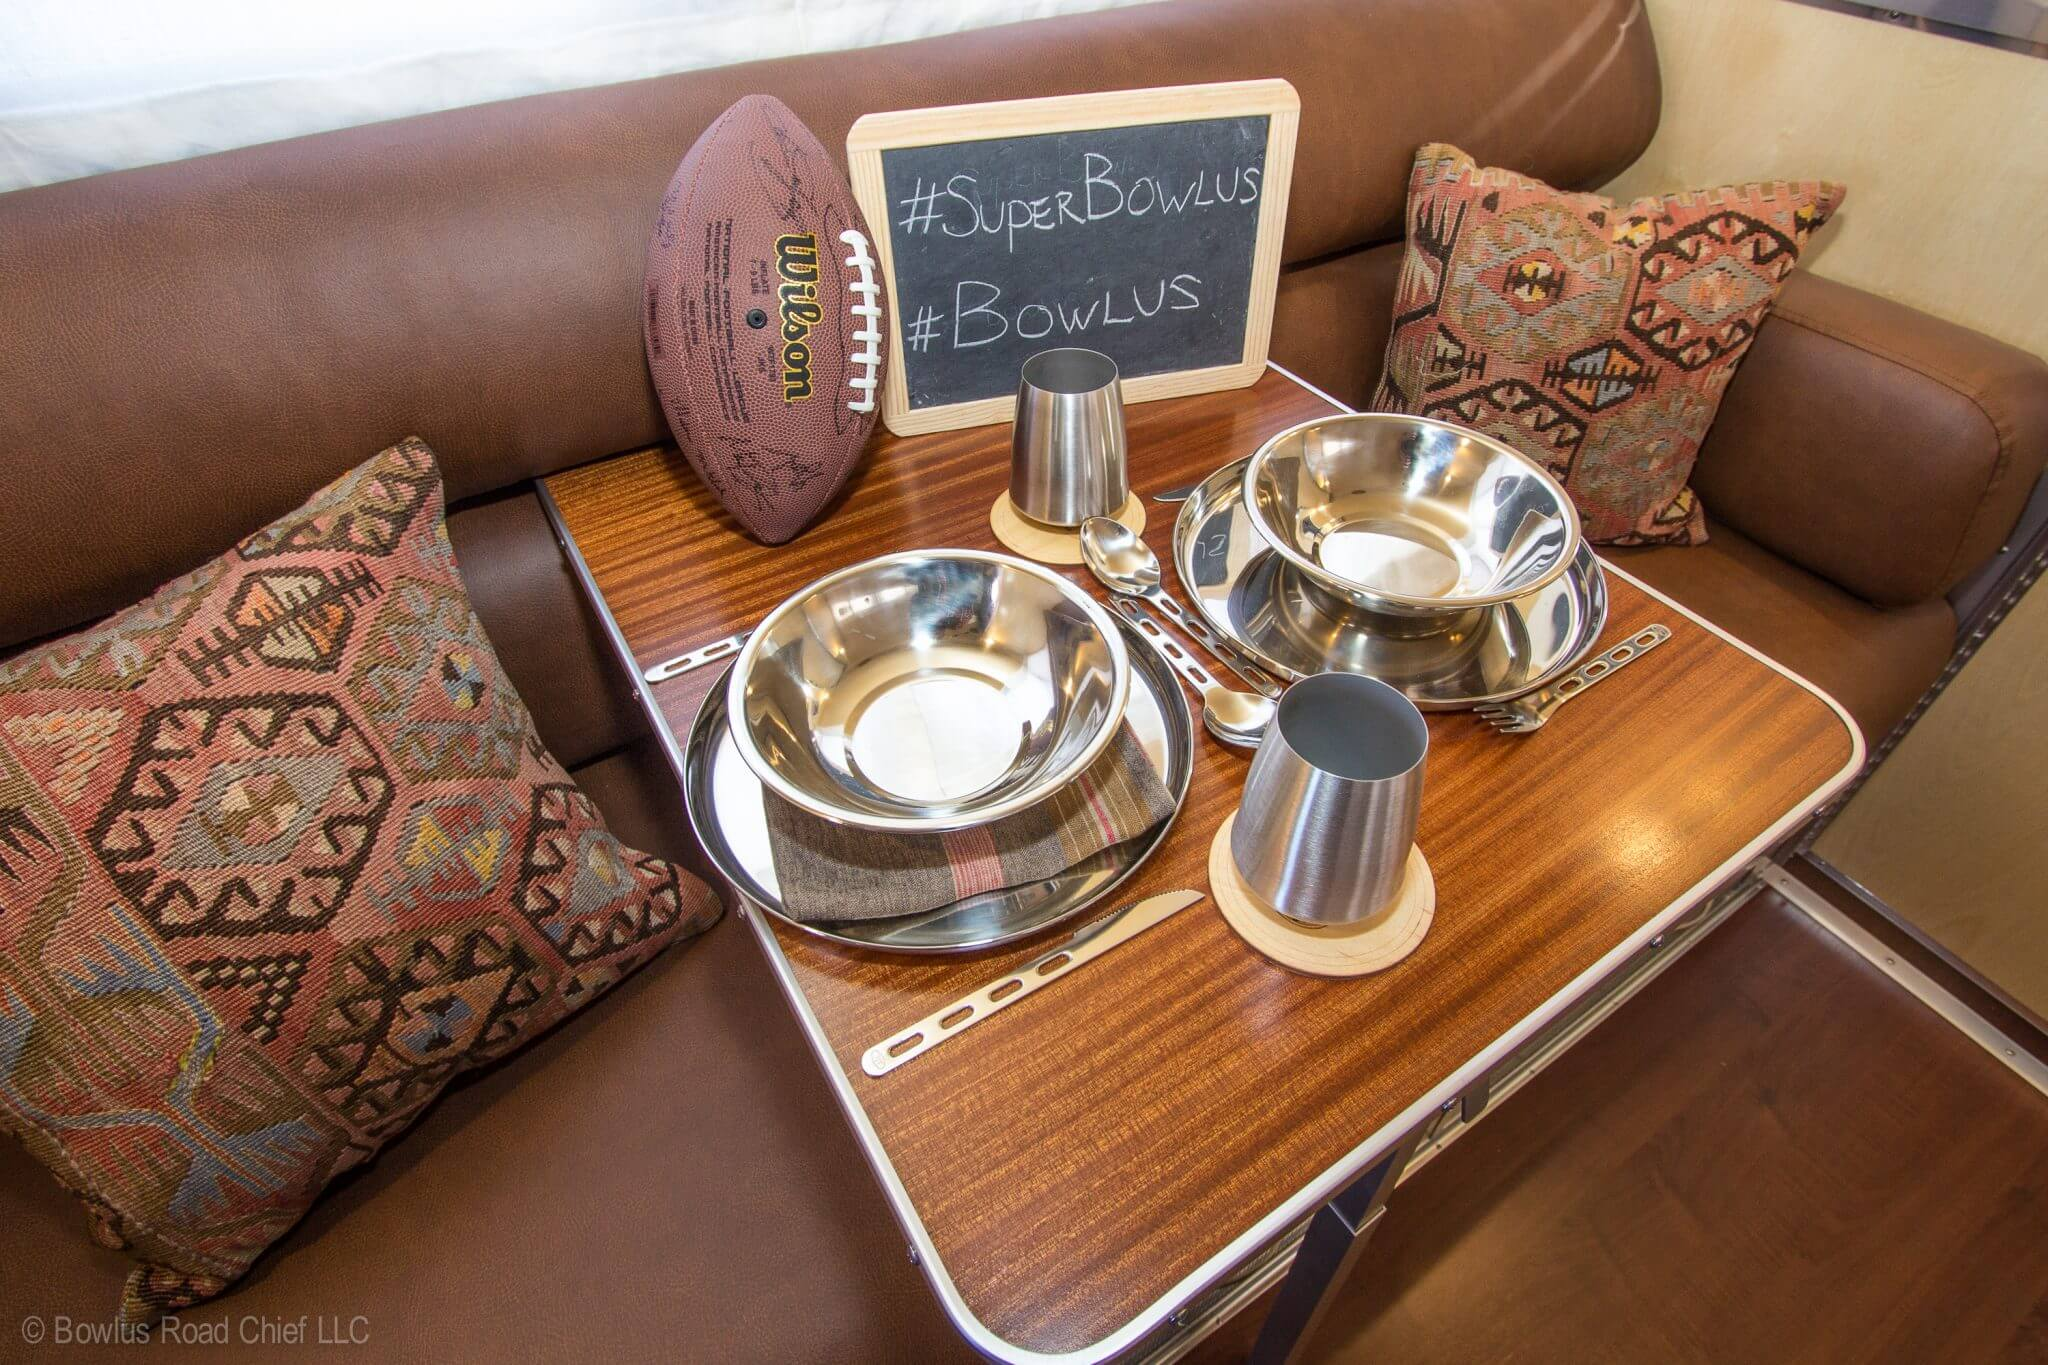 Bowlus Road Chief is featured in Super Bowl Advertising Campaign!